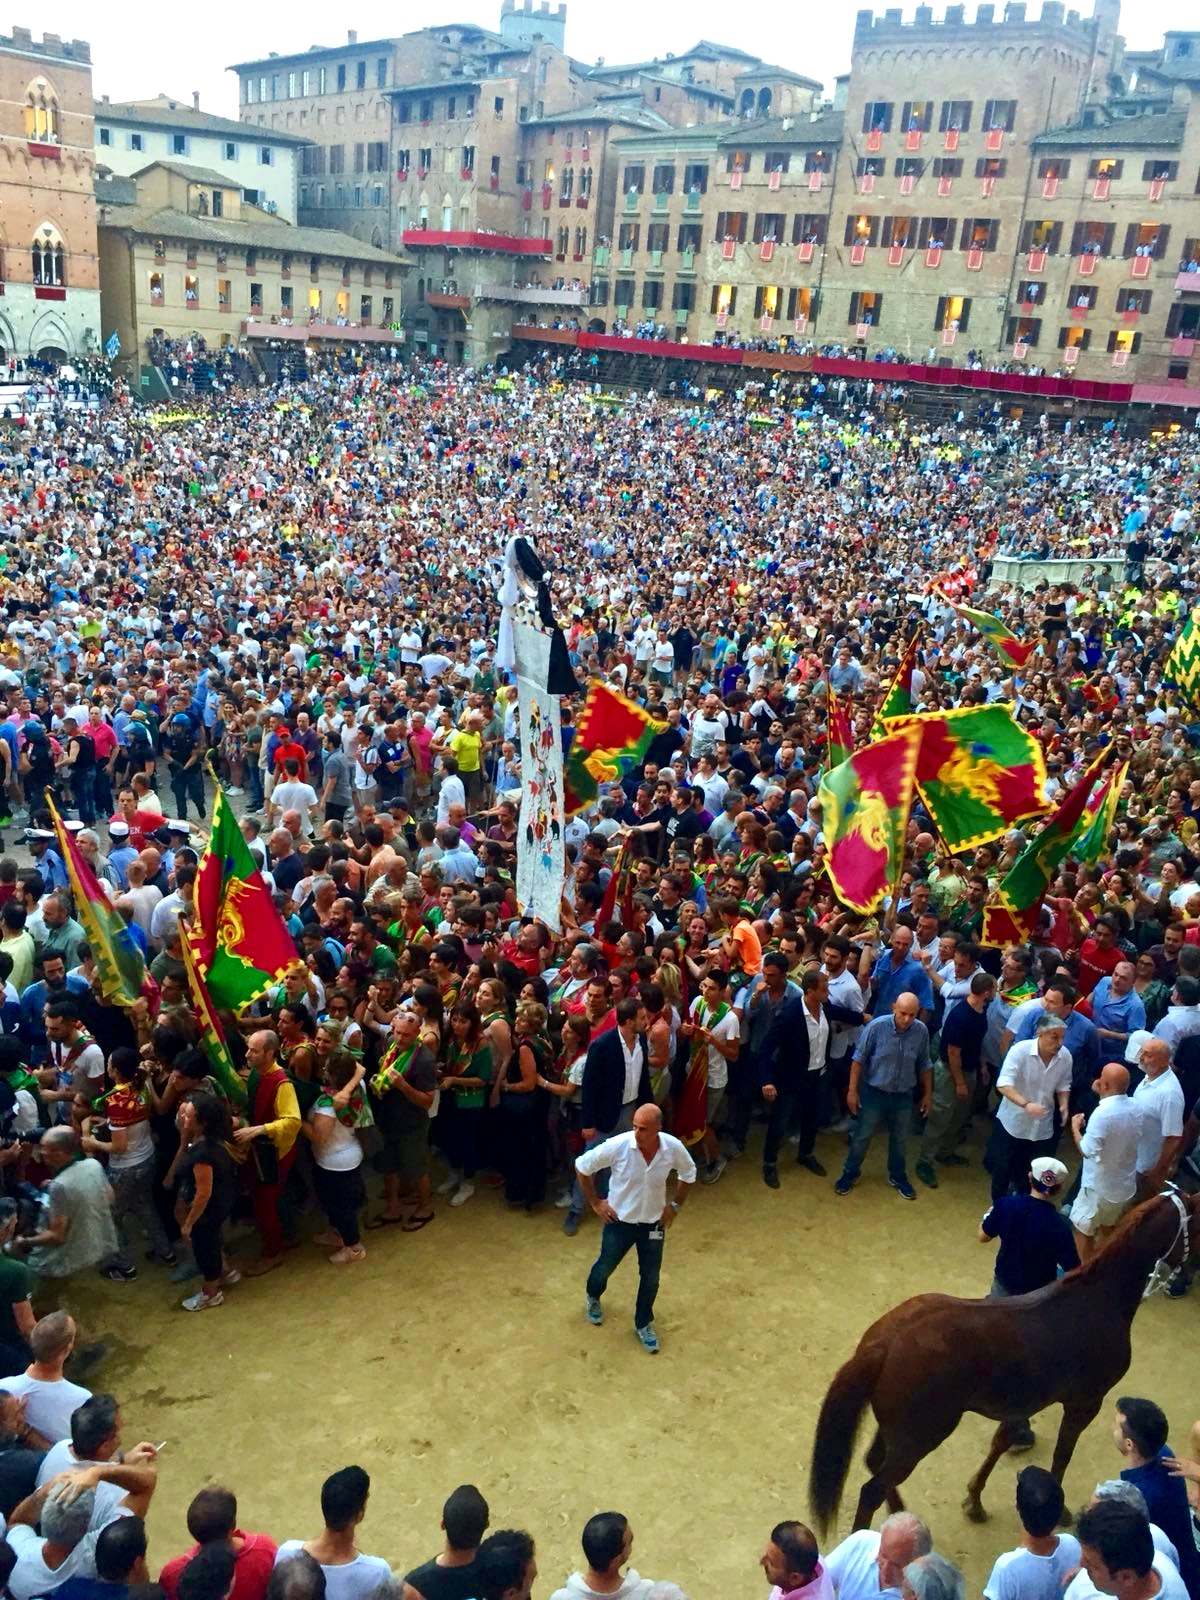 Celebrate the victorious Contrada of Palio horse race - Siena